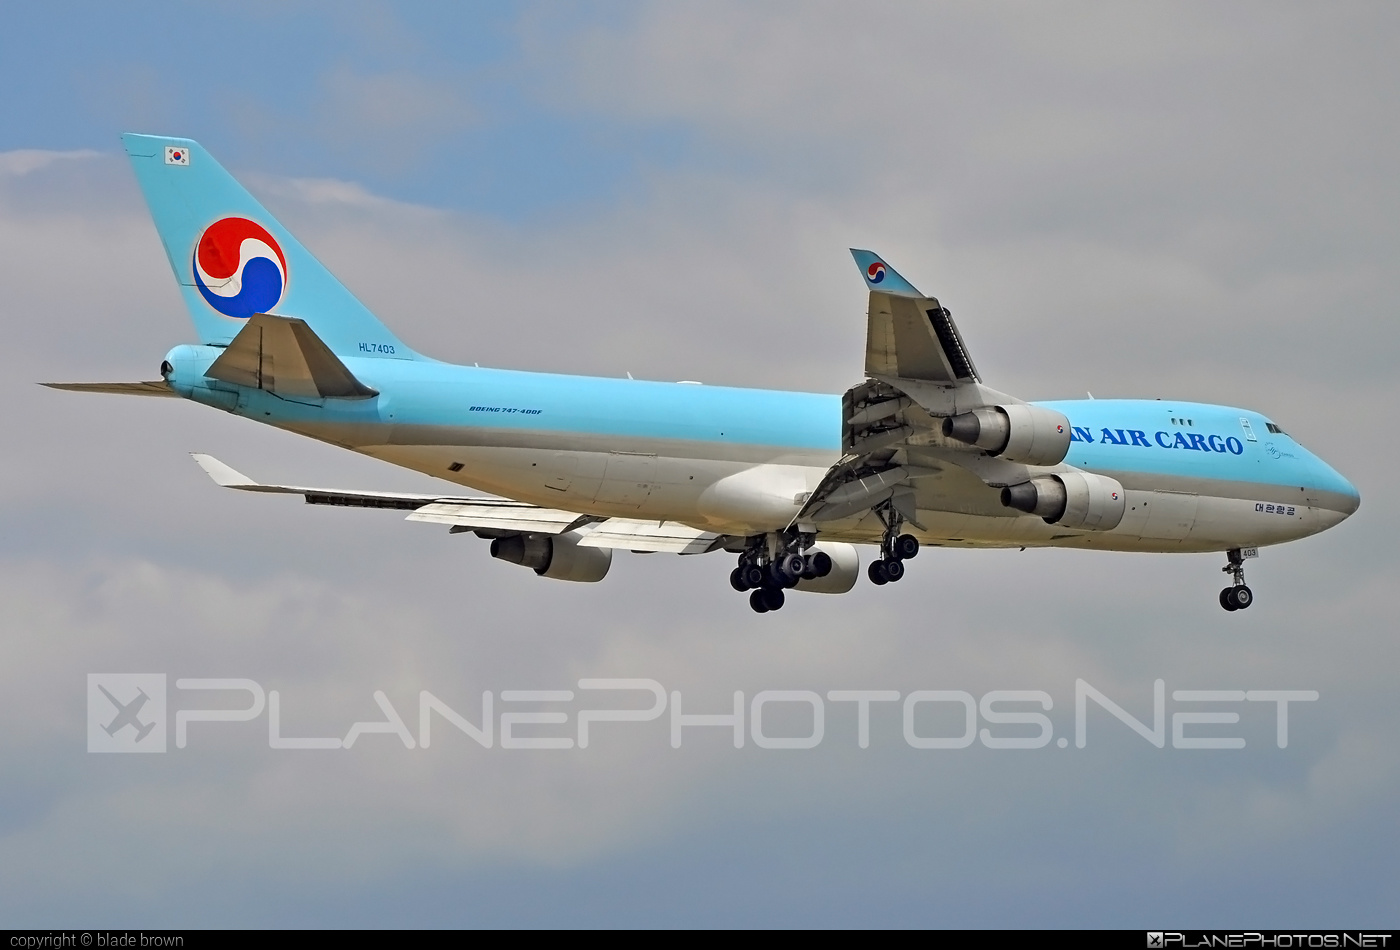 Boeing 747-400F - HL7403 operated by Korean Air Cargo #b747 #boeing #boeing747 #jumbo #koreanair #koreanaircargo